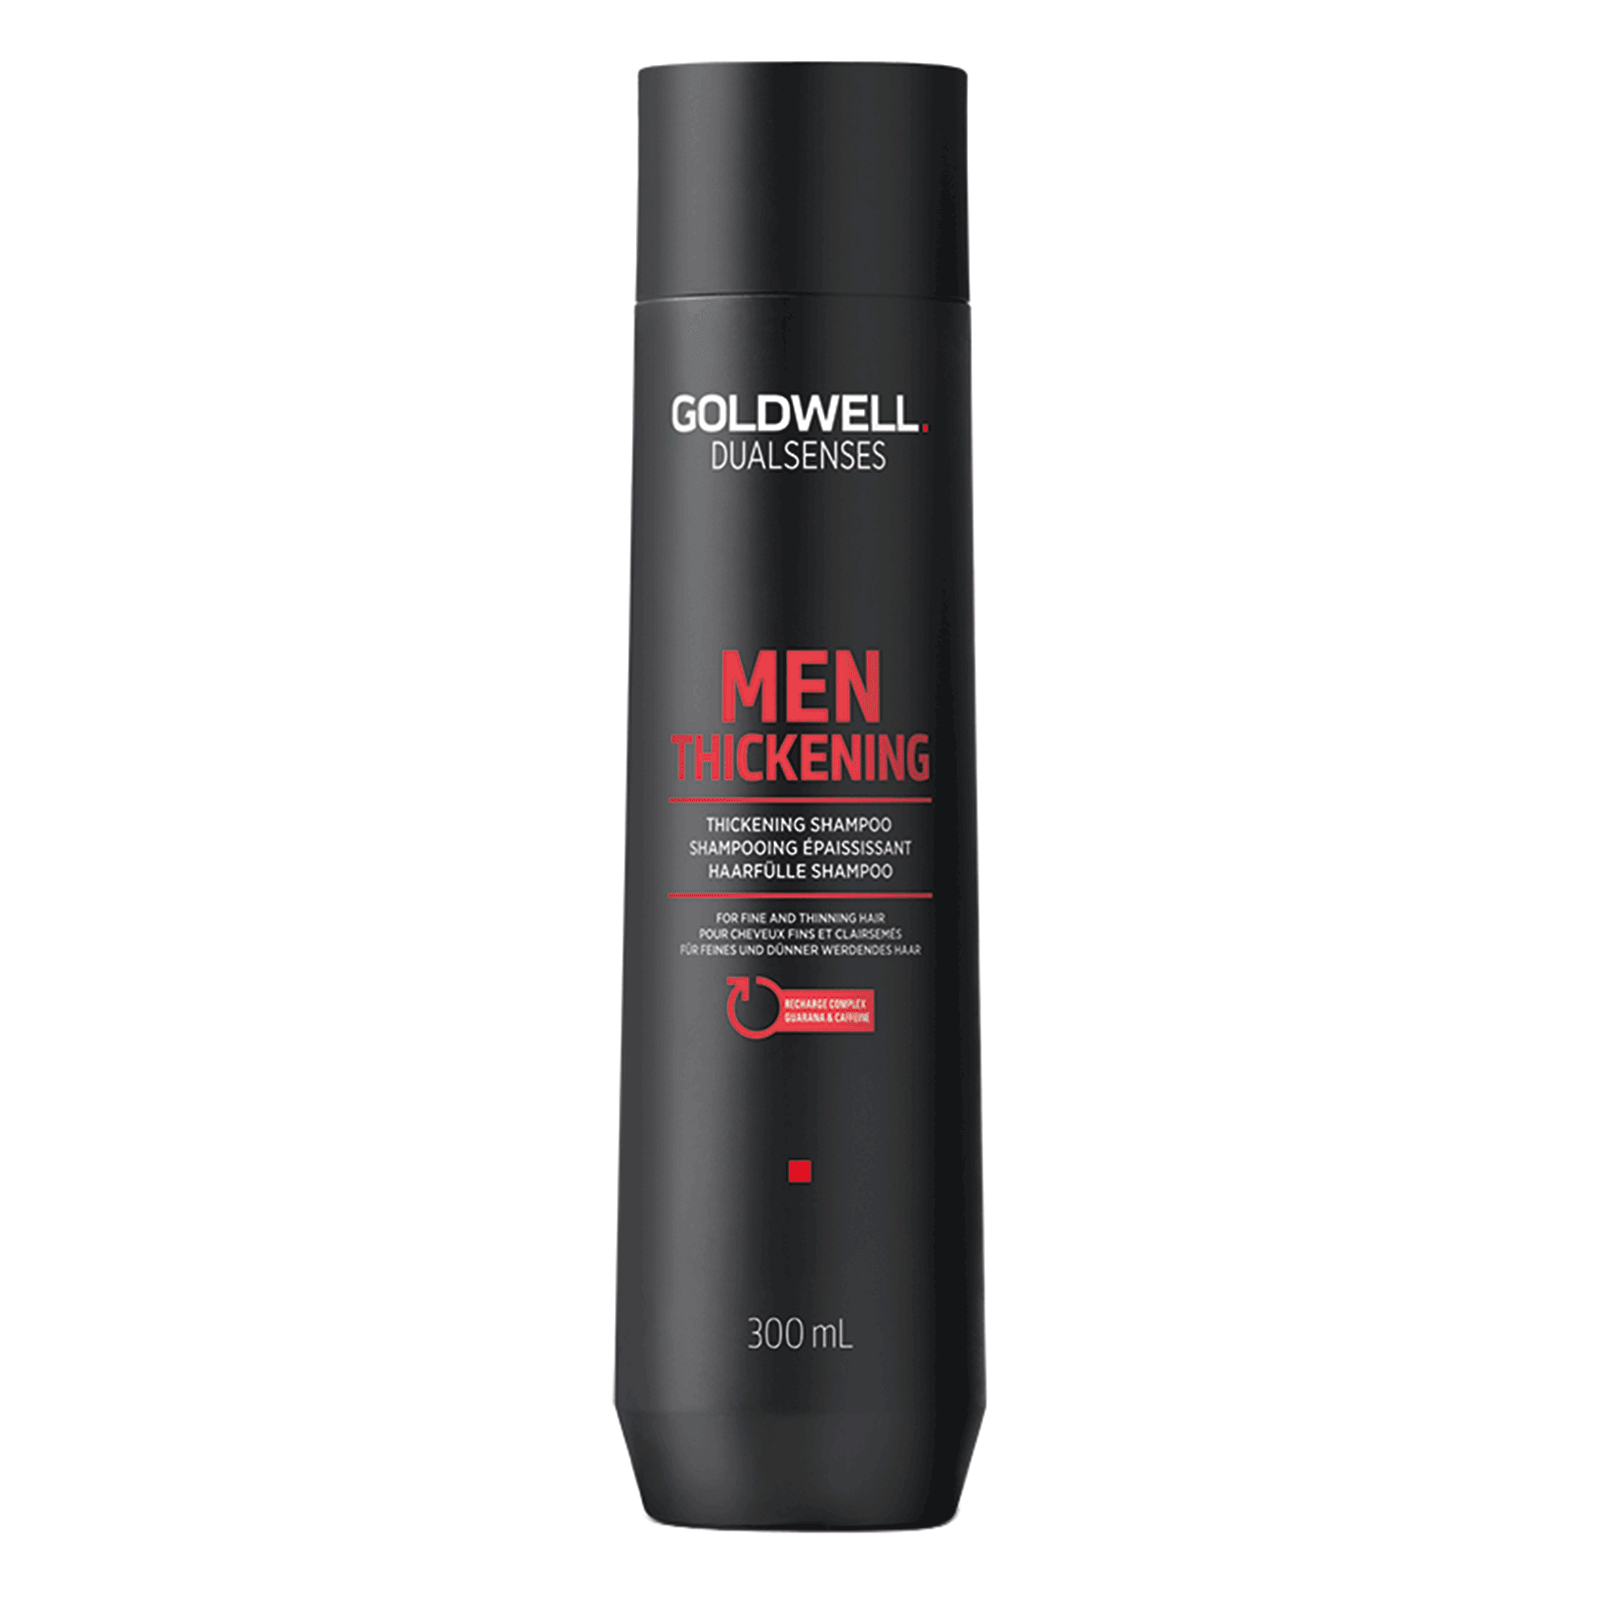 Goldwell Dualsenses For Men Thickening Shampoo.